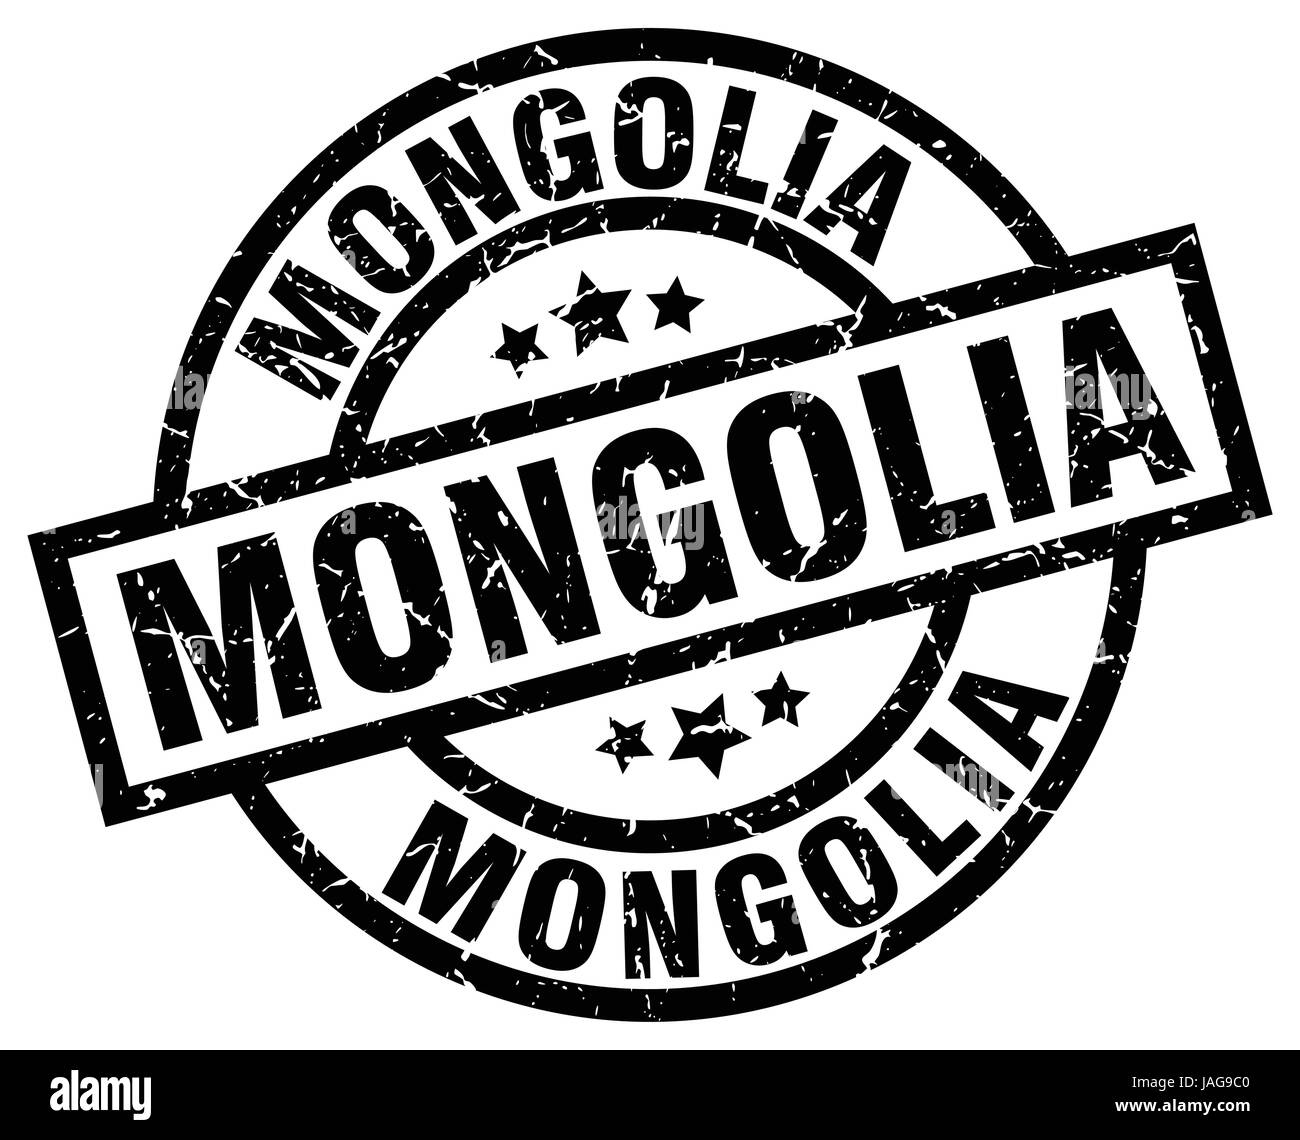 Mongolia black round grunge stamp - Stock Vector